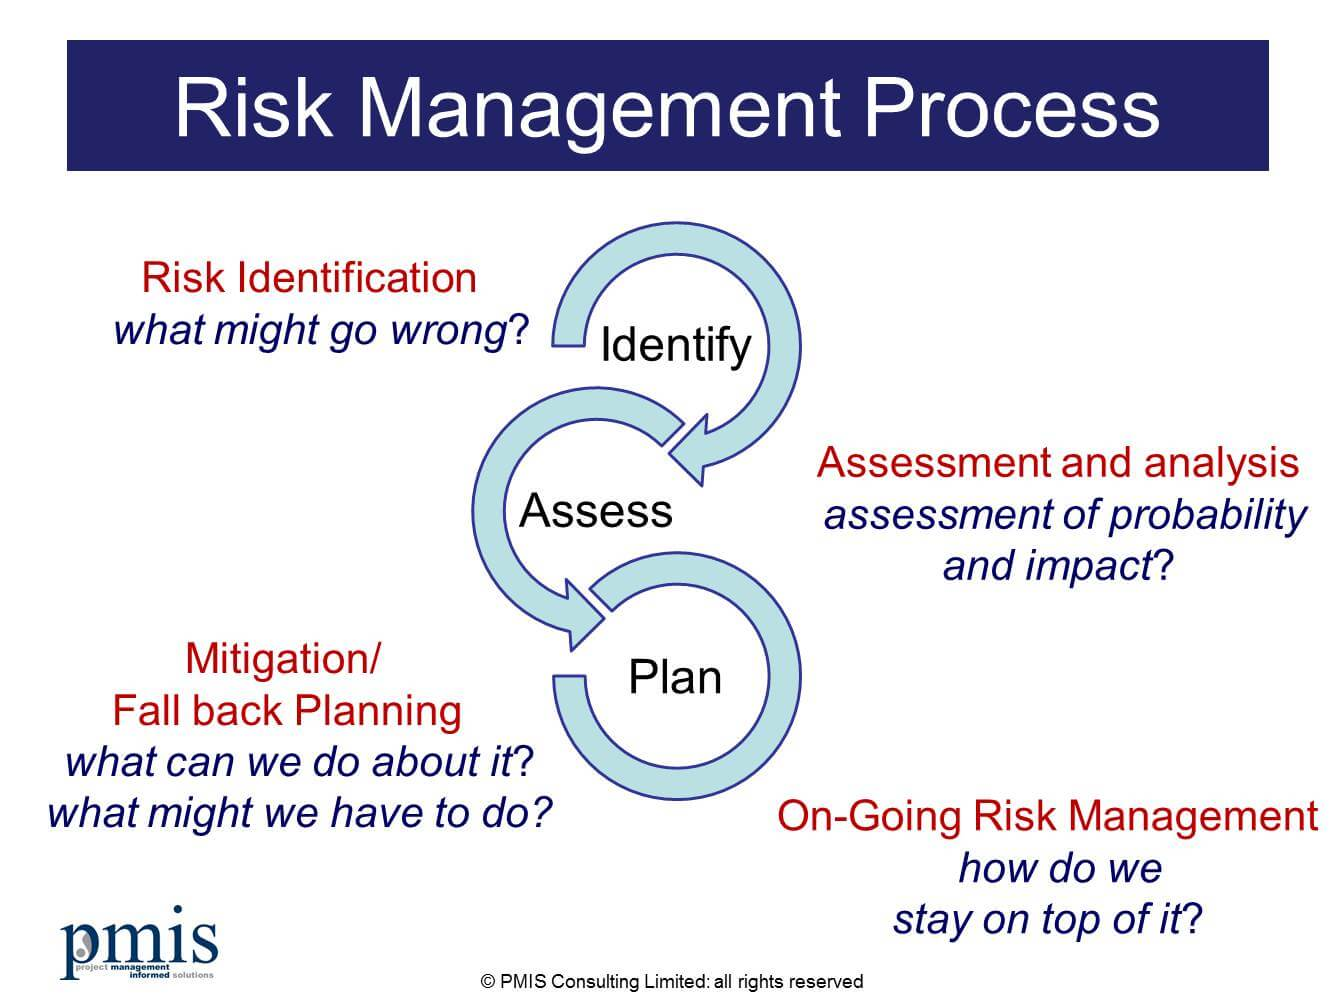 Project Risk Management Process  Free Register & Guidance. Can I Get Gastric Bypass Surgery. Mobile Phone Deals U K Hmi Interface With Plc. Is Business Administration A Good Degree. Overseas Moving Company Charmed Episodes List. Best Colleges For Psychology Majors. Business Loans In Australia Ser U Ftp Server. Mba Without Work Experience In Usa. Playstation Network Down How To Get Sba Loans